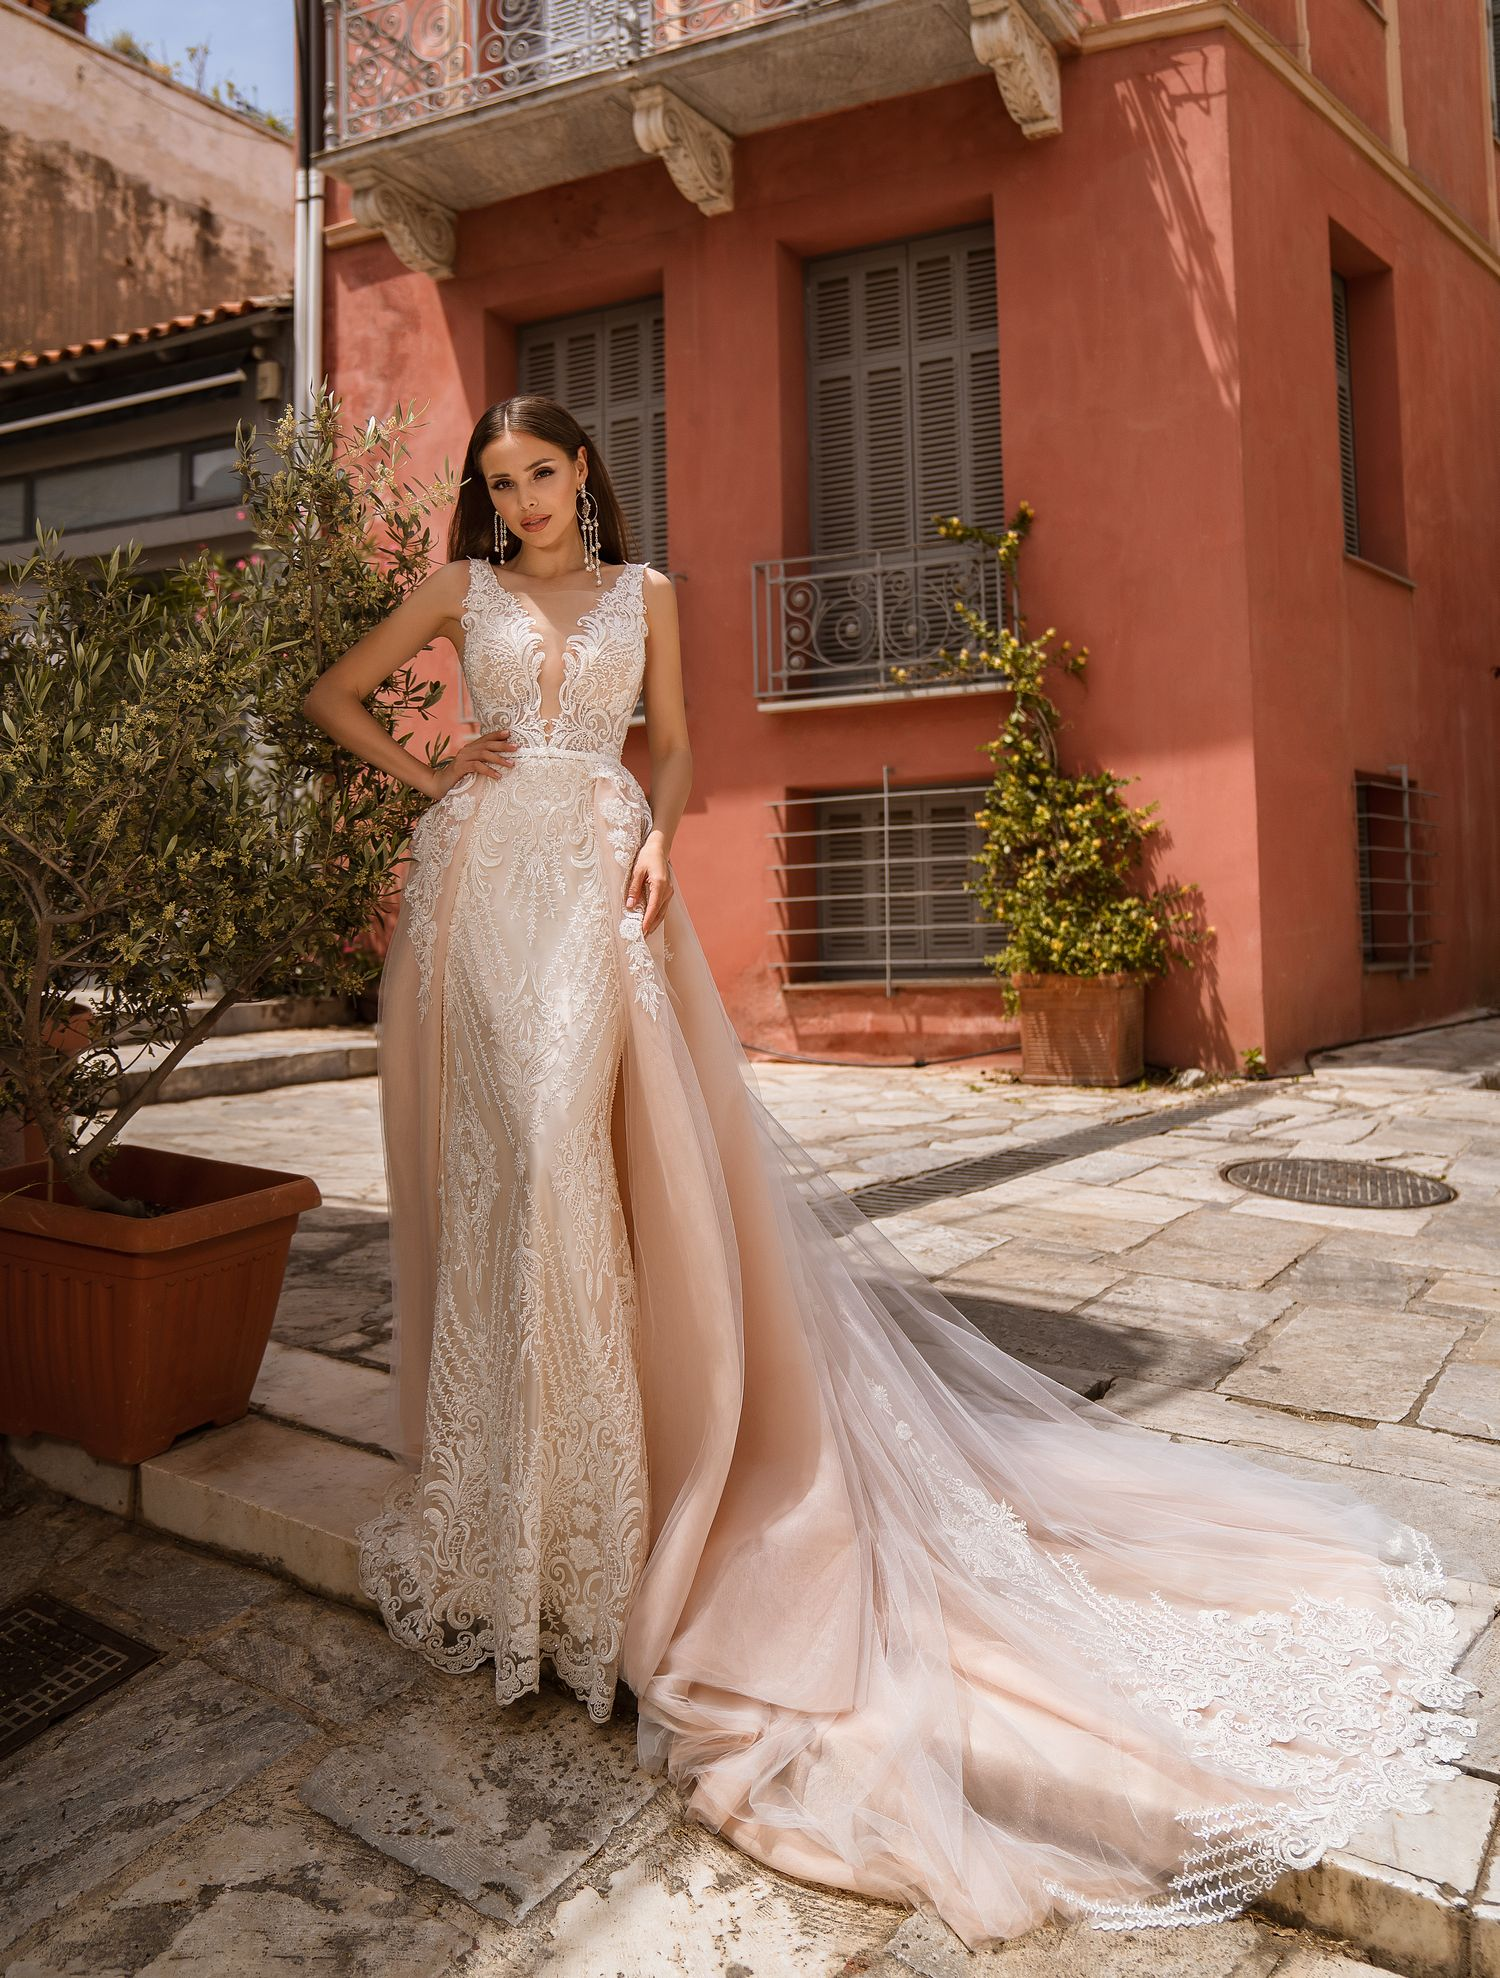 Wedding dress with low-cut neckline wholesale from manufacturer Supernova-1